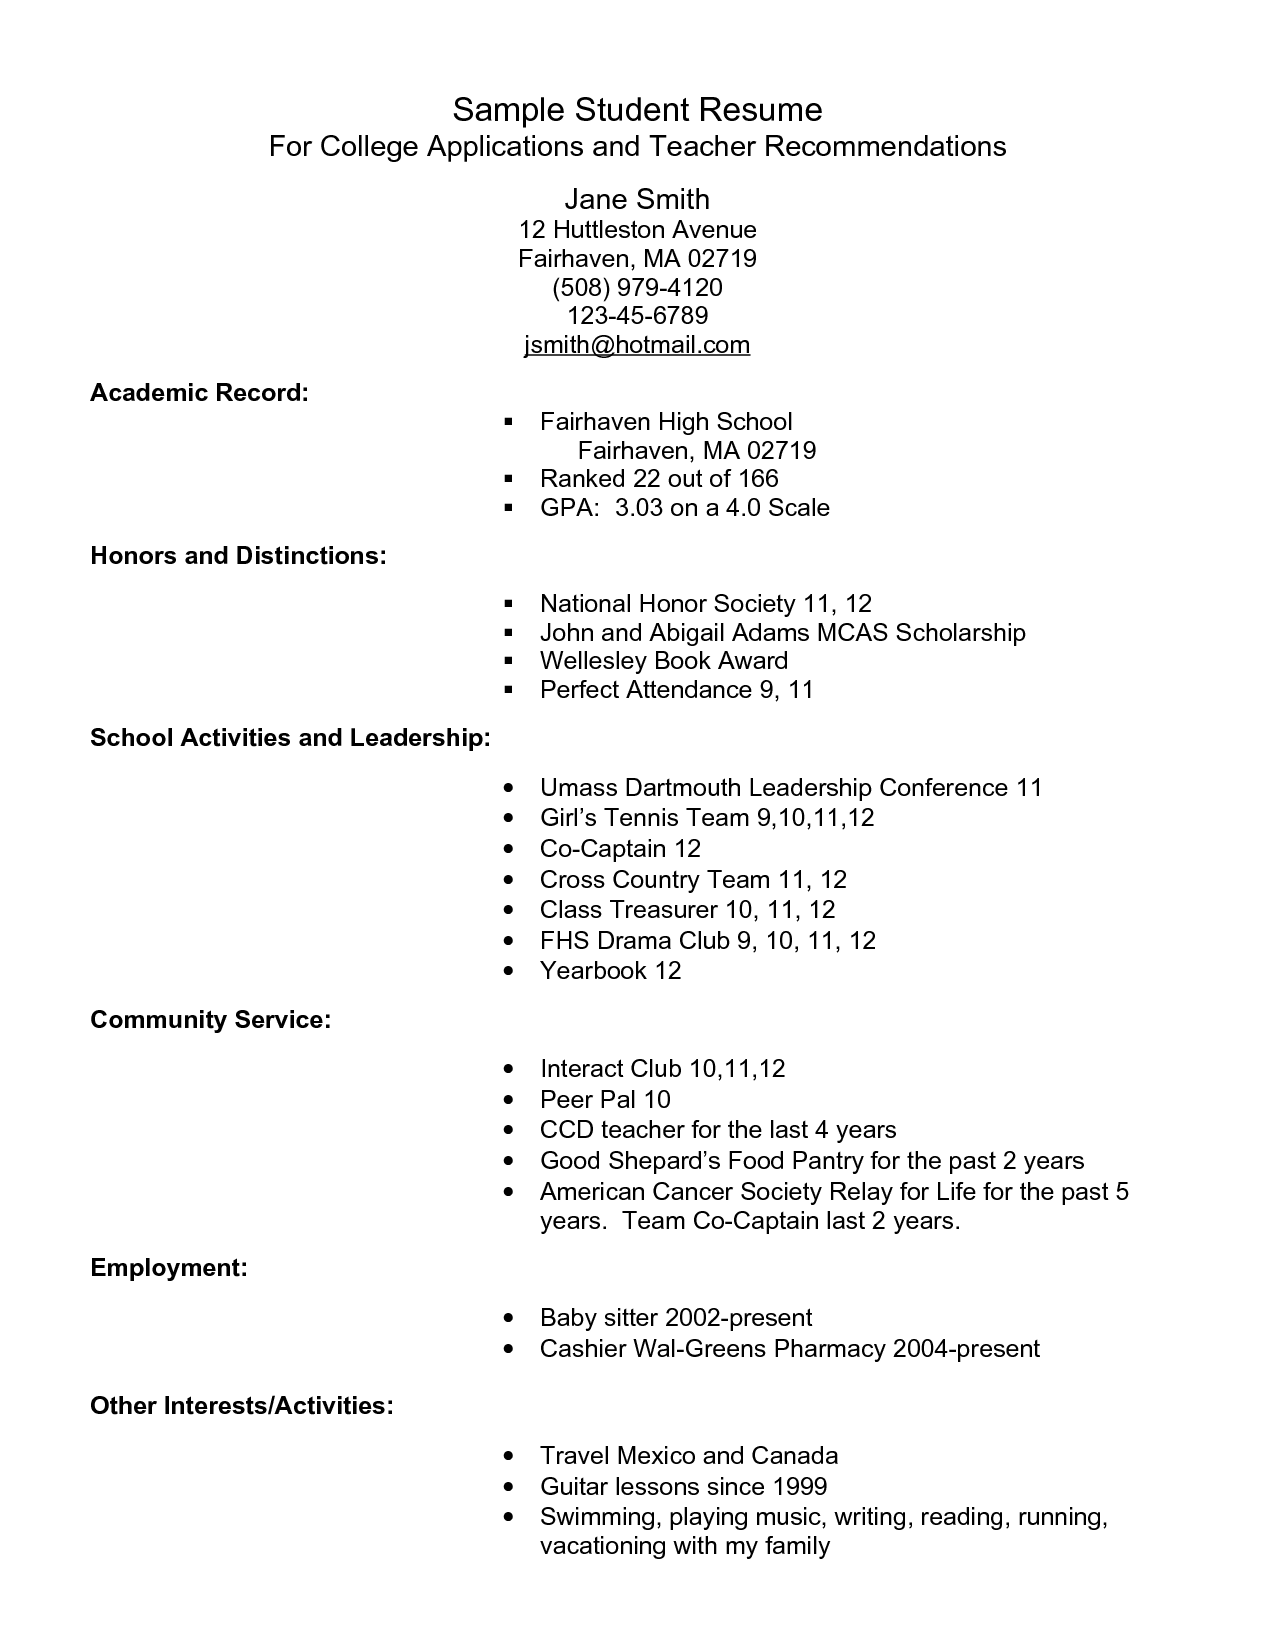 Example Resume For High School Students For College Applications Sample  Student Resume   PDF By Smapdi59  College Resume Template